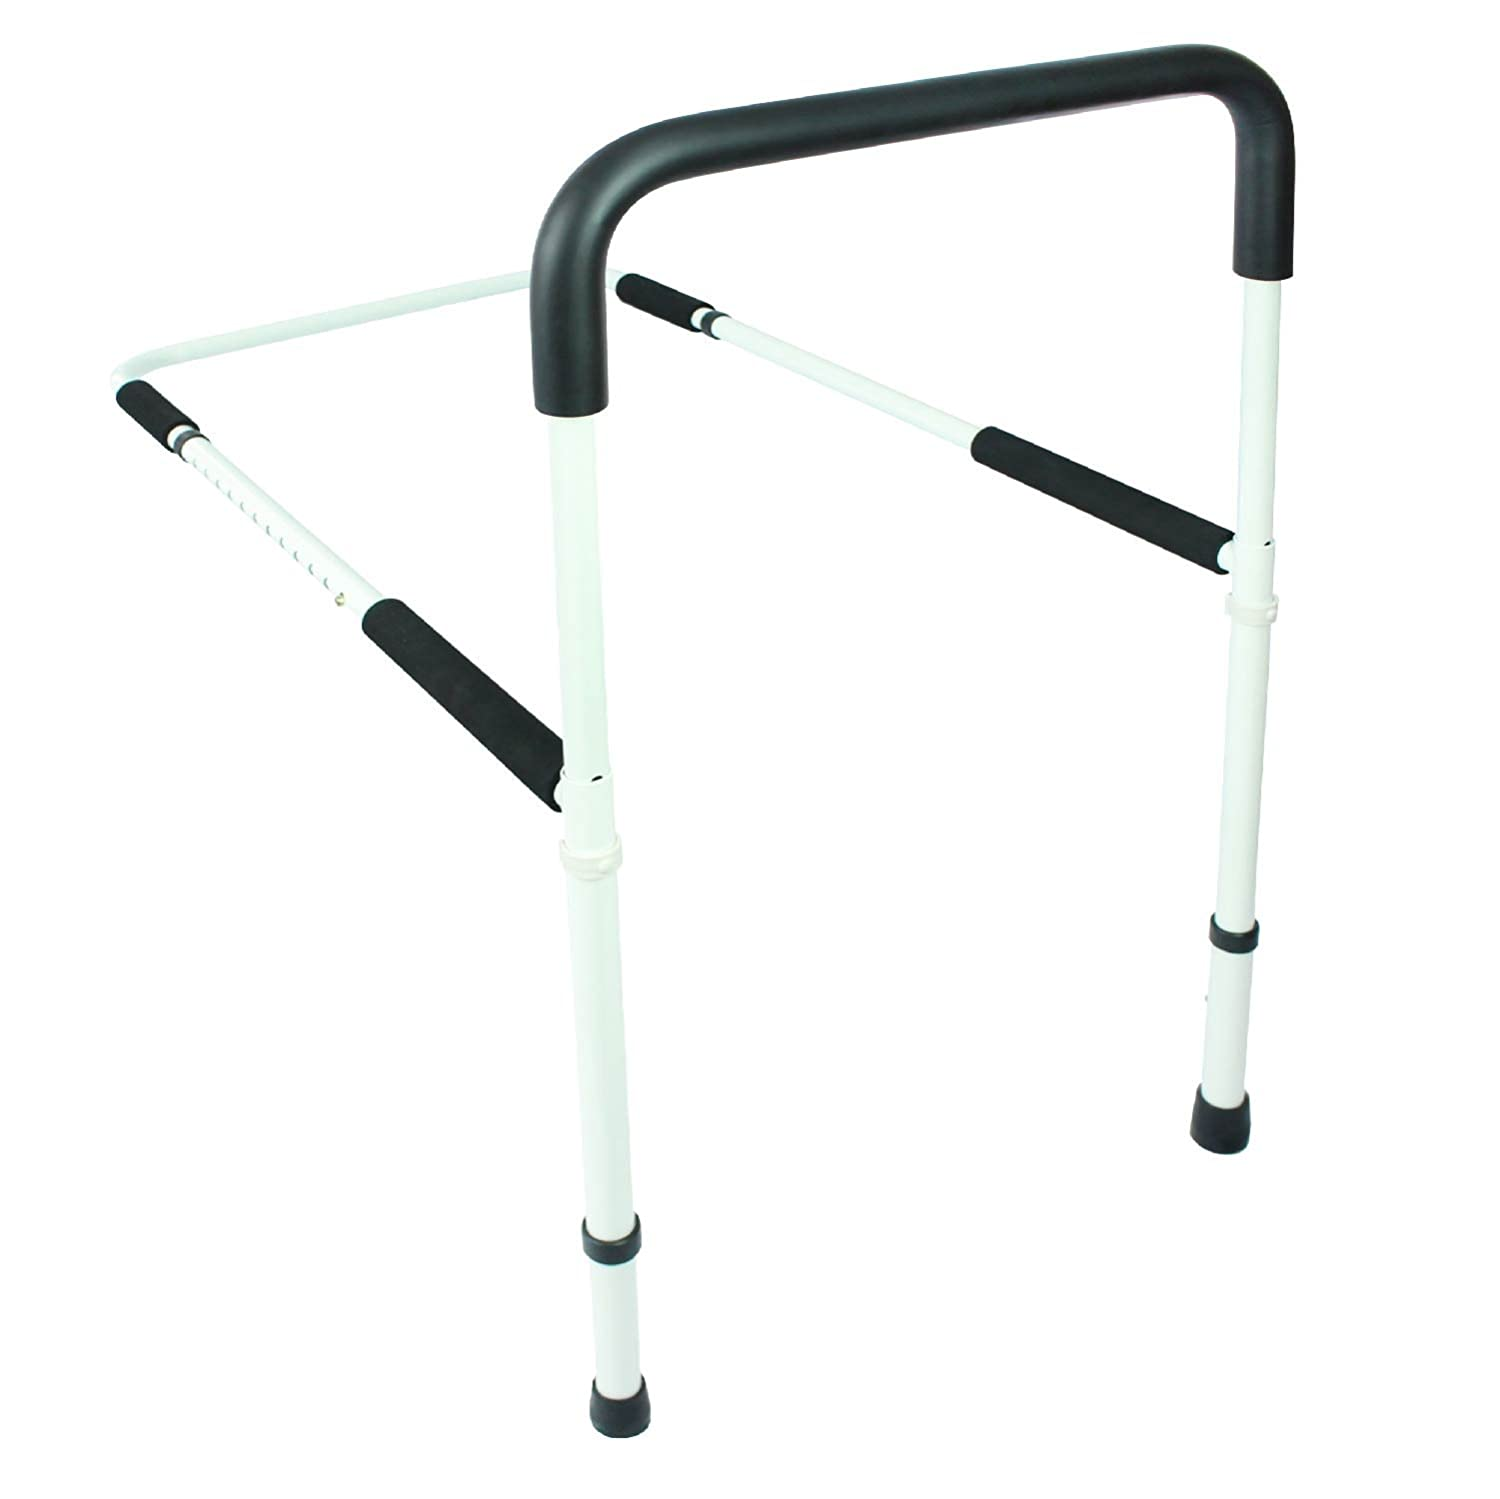 Transfer handle security bed rail mobile transfer systems mts - Bed Rail By Vive Bed Assist Bar For Adults Seniors